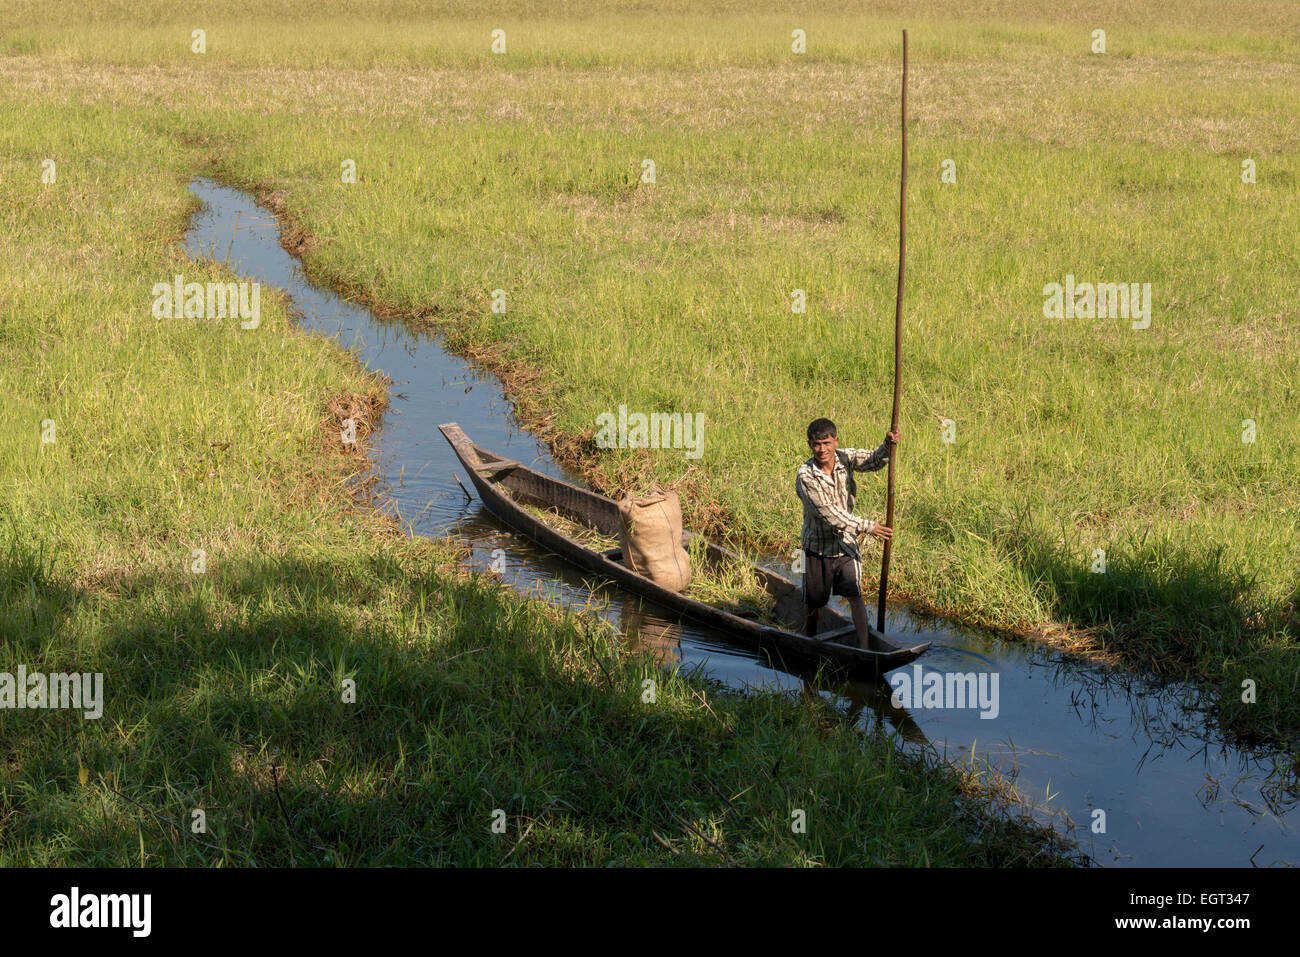 Man Driving Boat With Pole On A Small Canal, Wetlands, Majuli Island - Stock Image